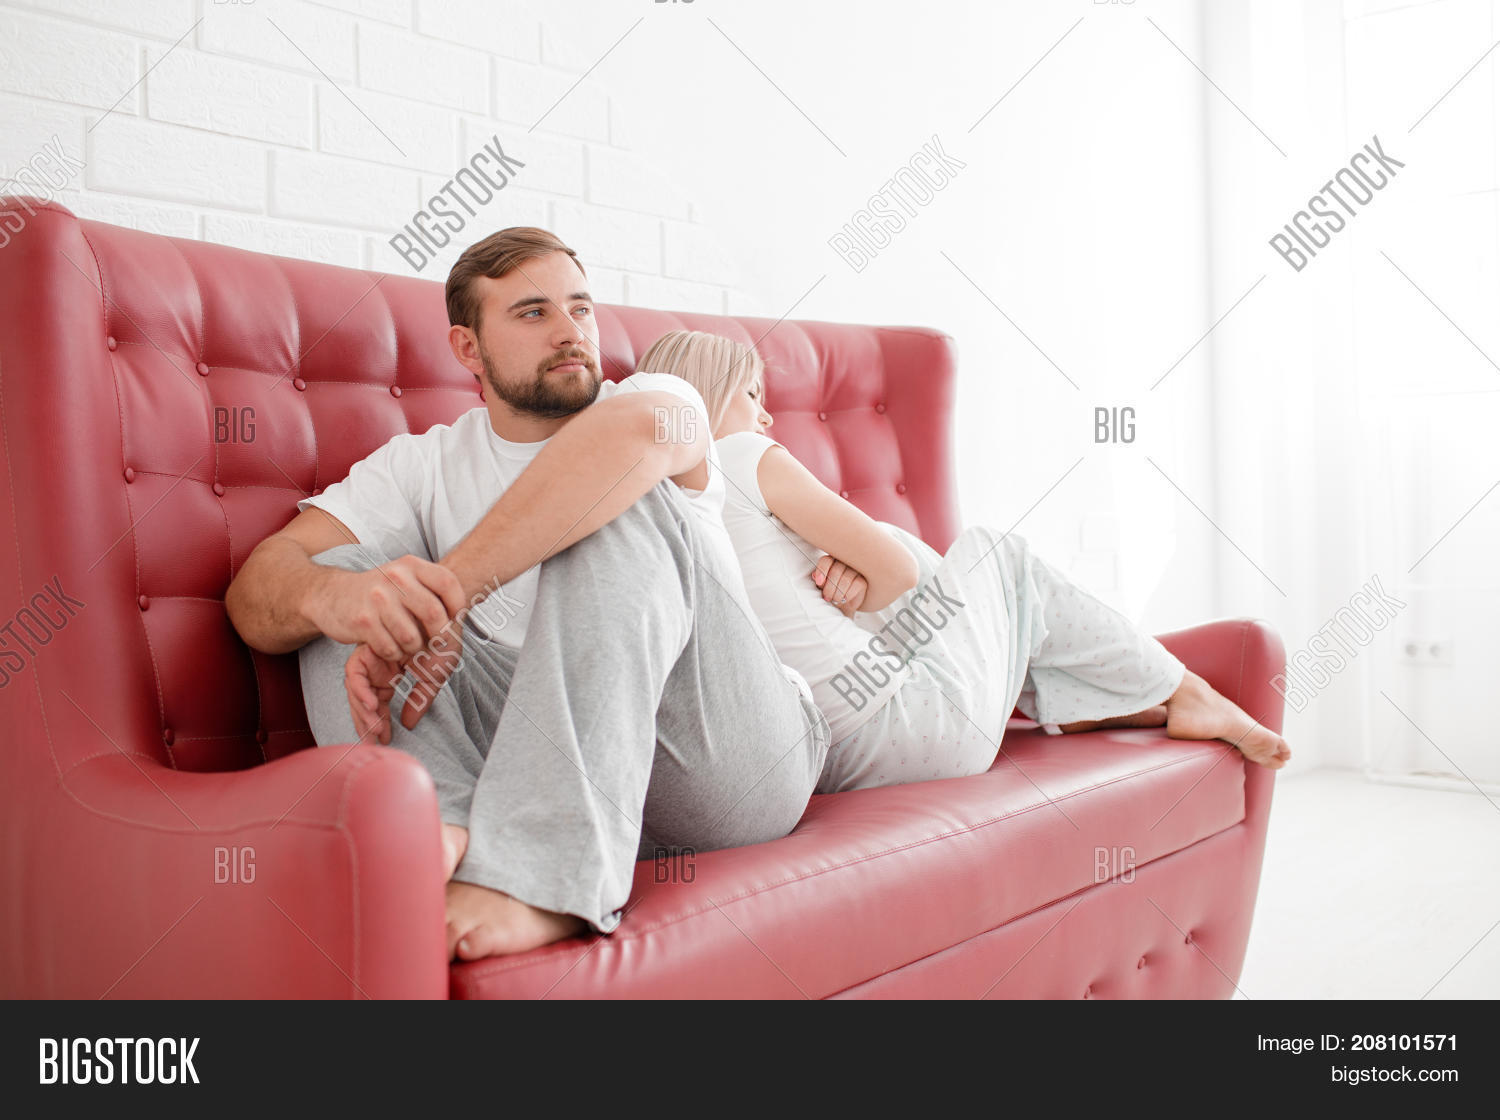 Terrific Bearded Man White Girl Image Photo Free Trial Bigstock Squirreltailoven Fun Painted Chair Ideas Images Squirreltailovenorg